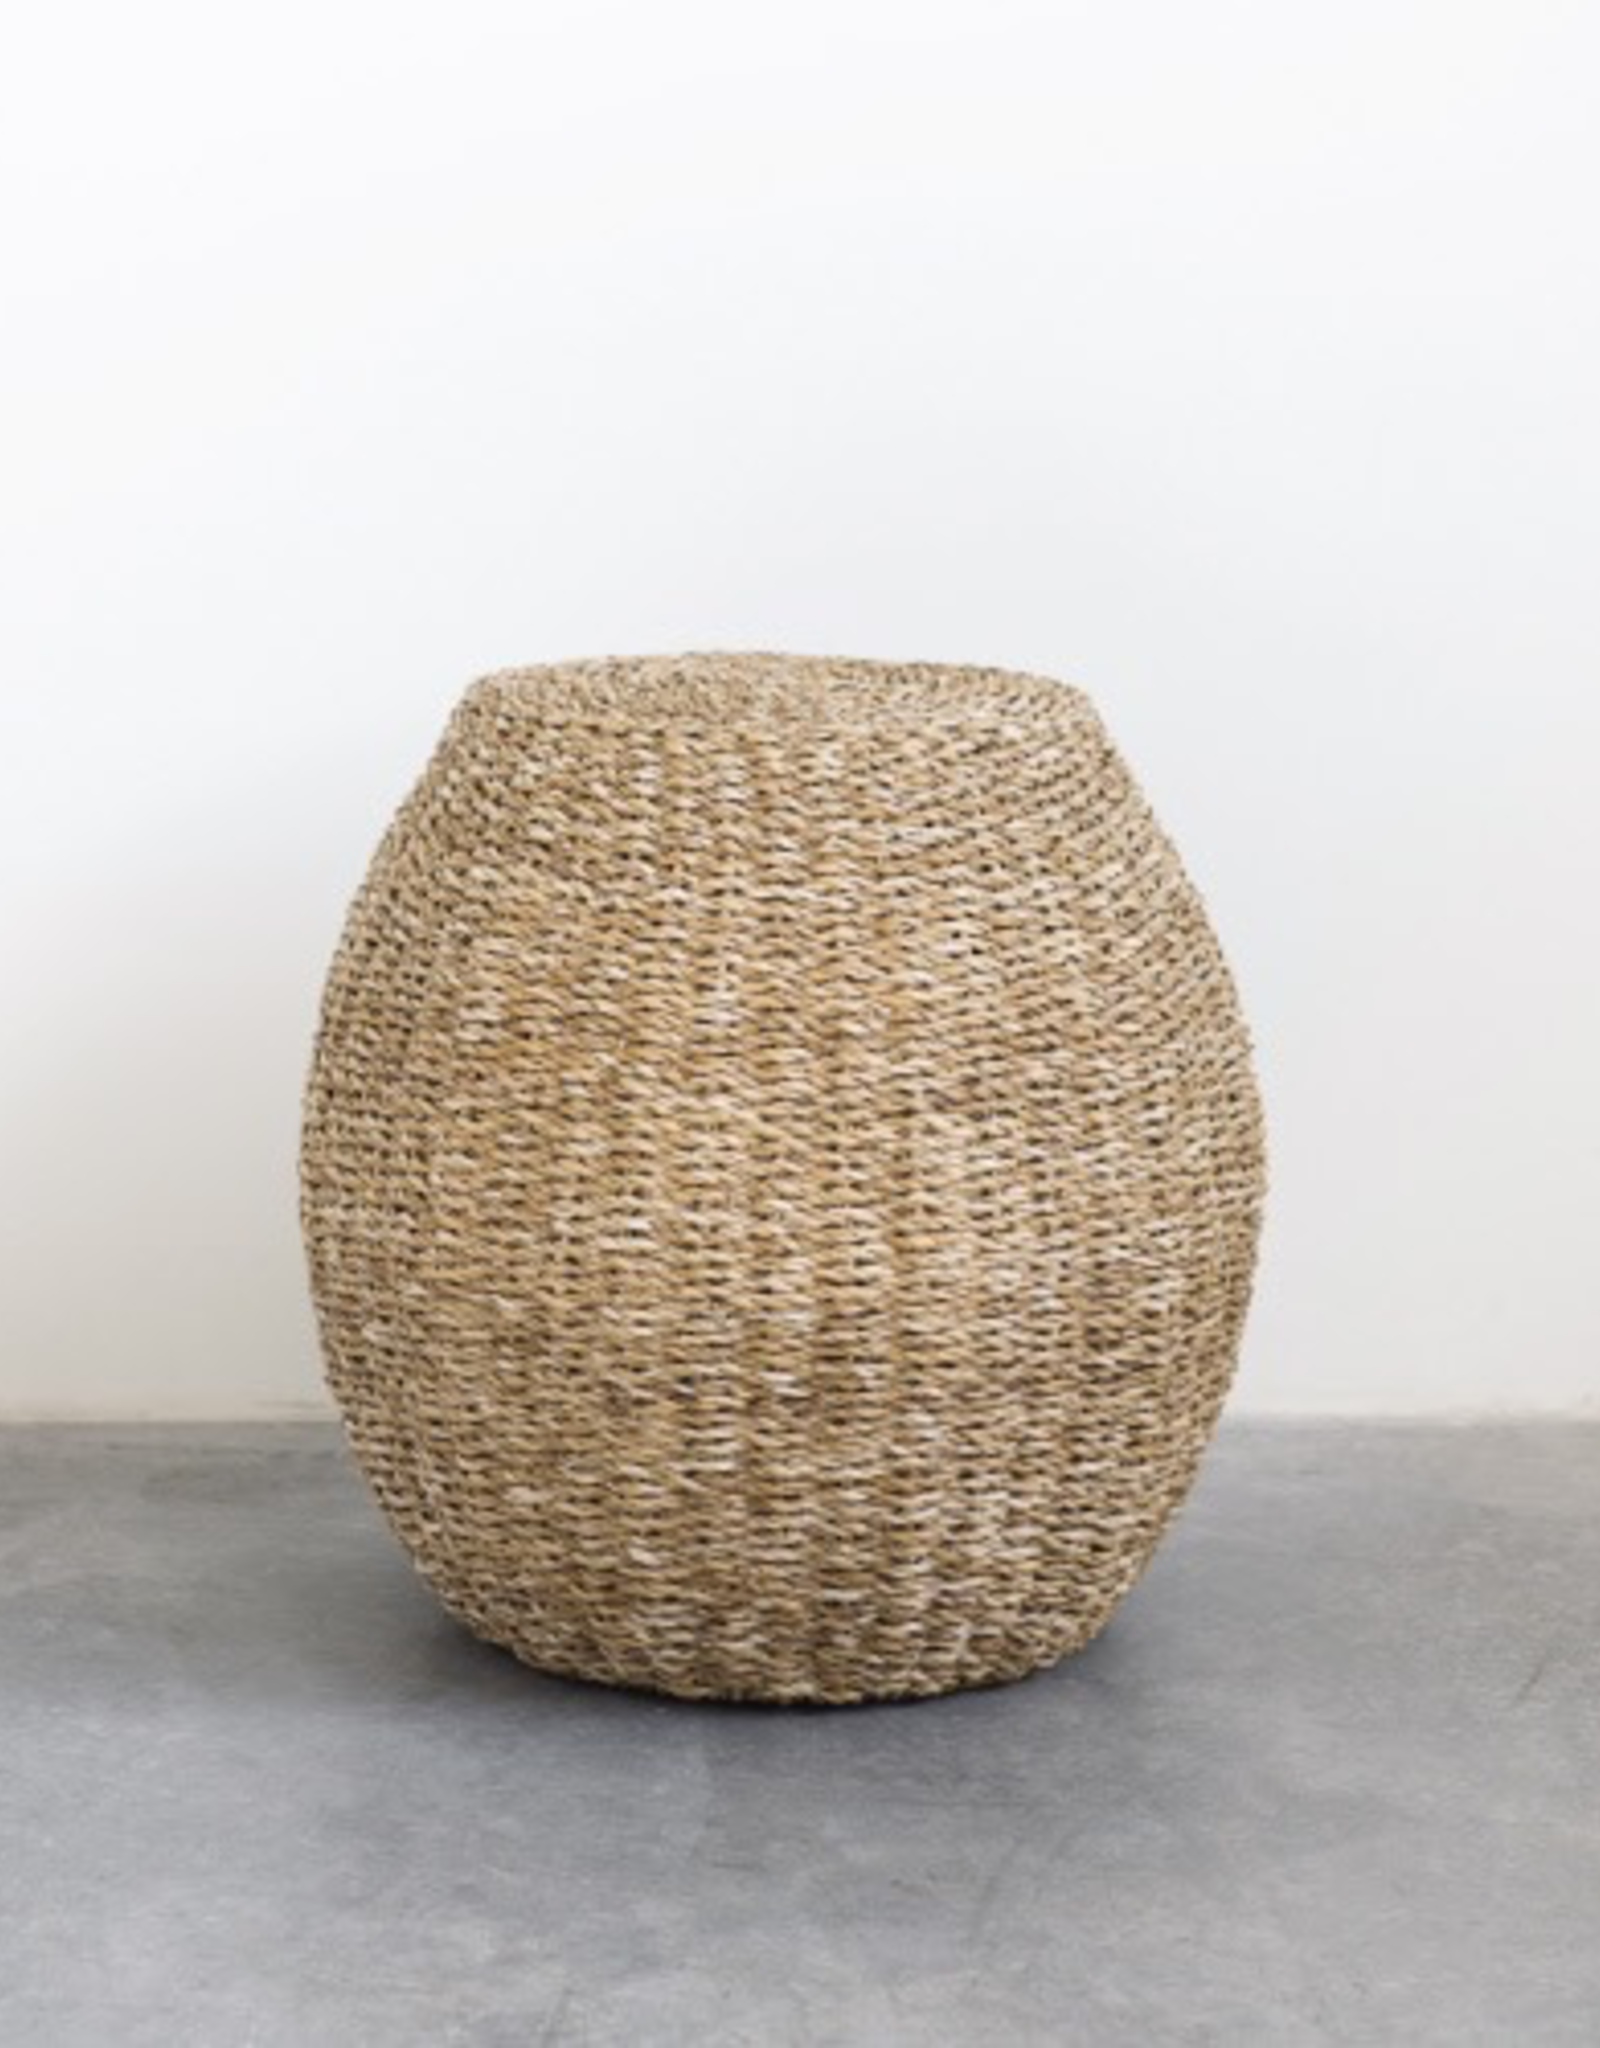 Handwoven Seagrass Stool